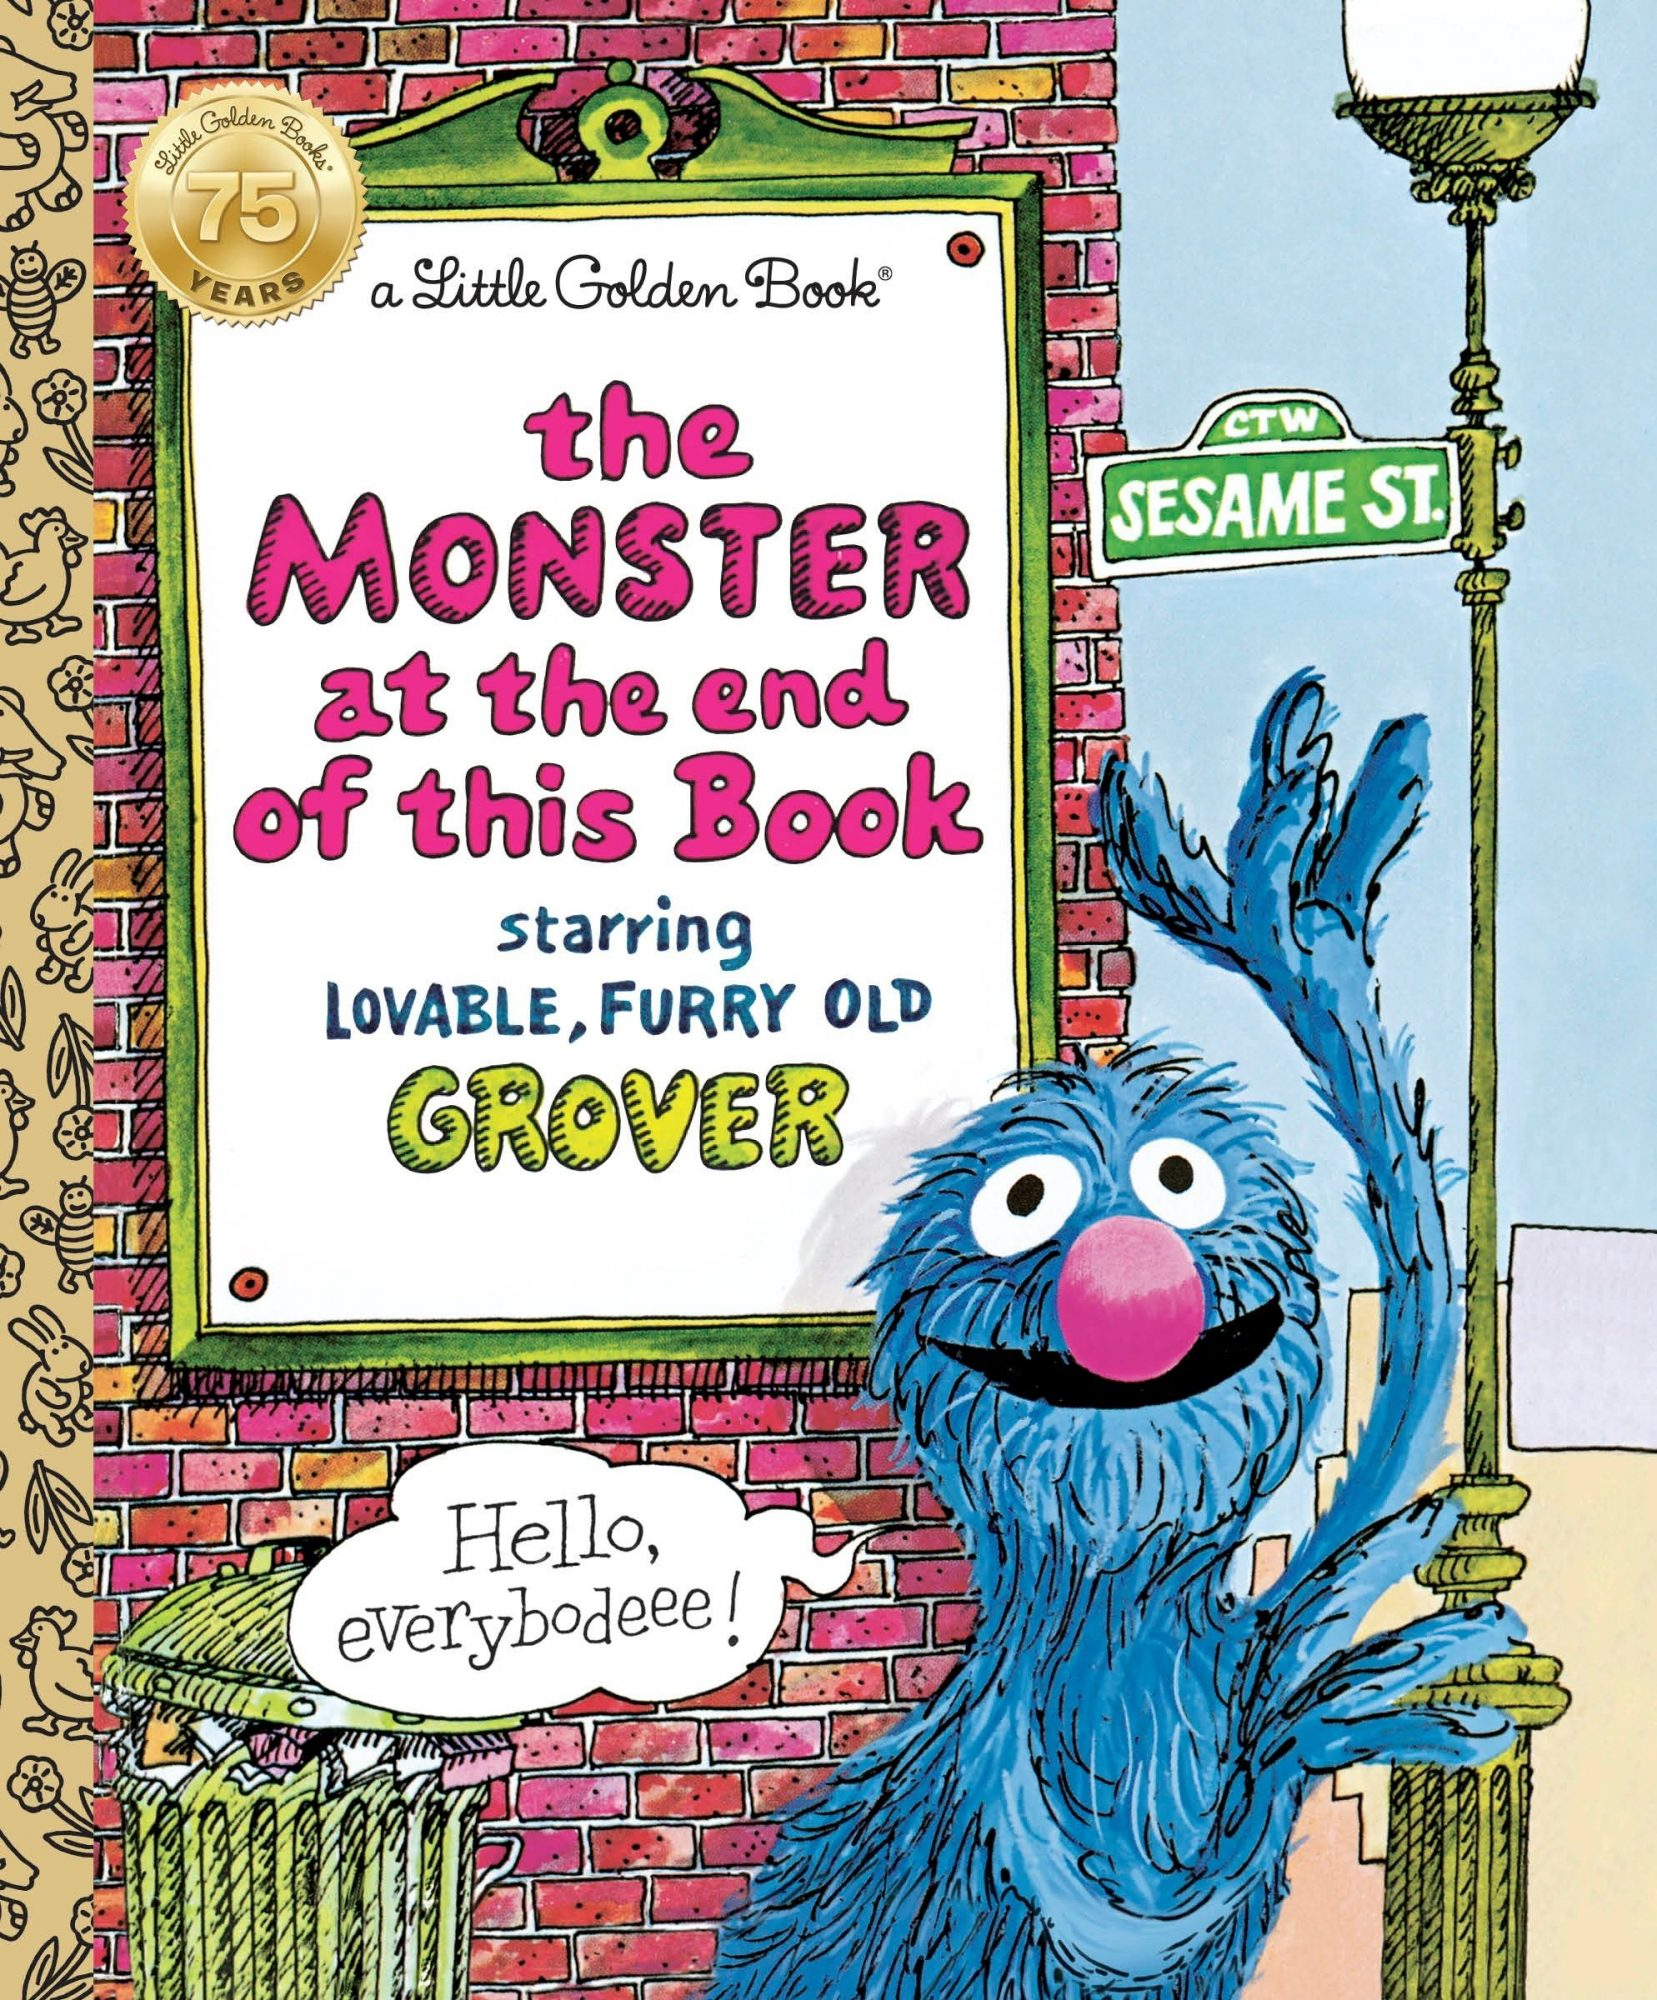 The Monster at the End of This Book by Jon Stone, illustrated by Michael Smollin